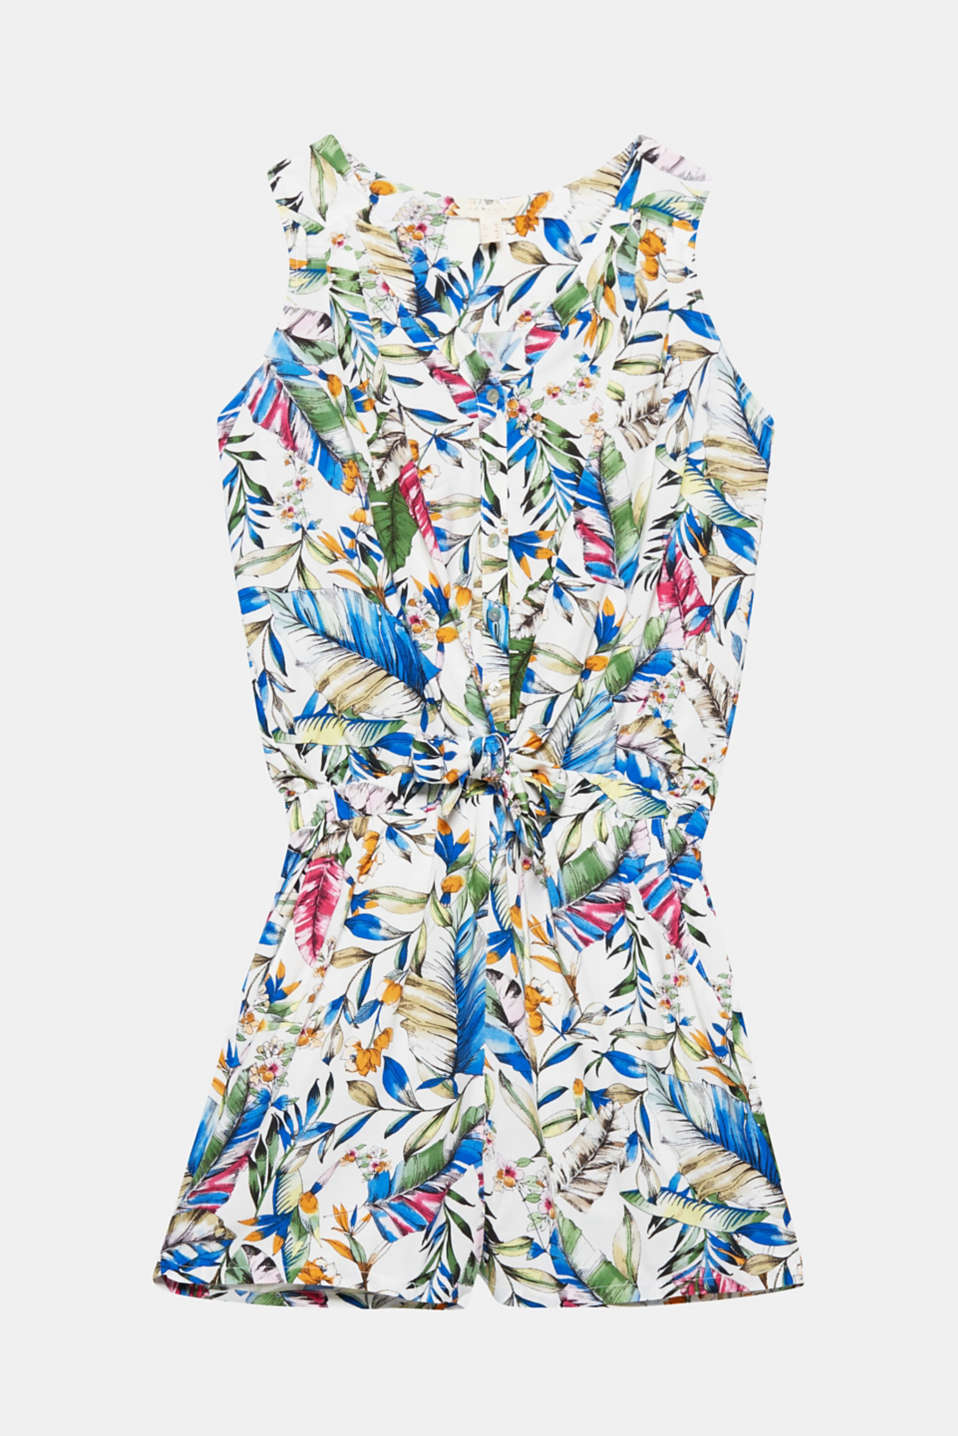 Sets the scene perfectly for the colourful tropical print: the flowing, comfortable fabric makes this jumpsuit a great summer piece!